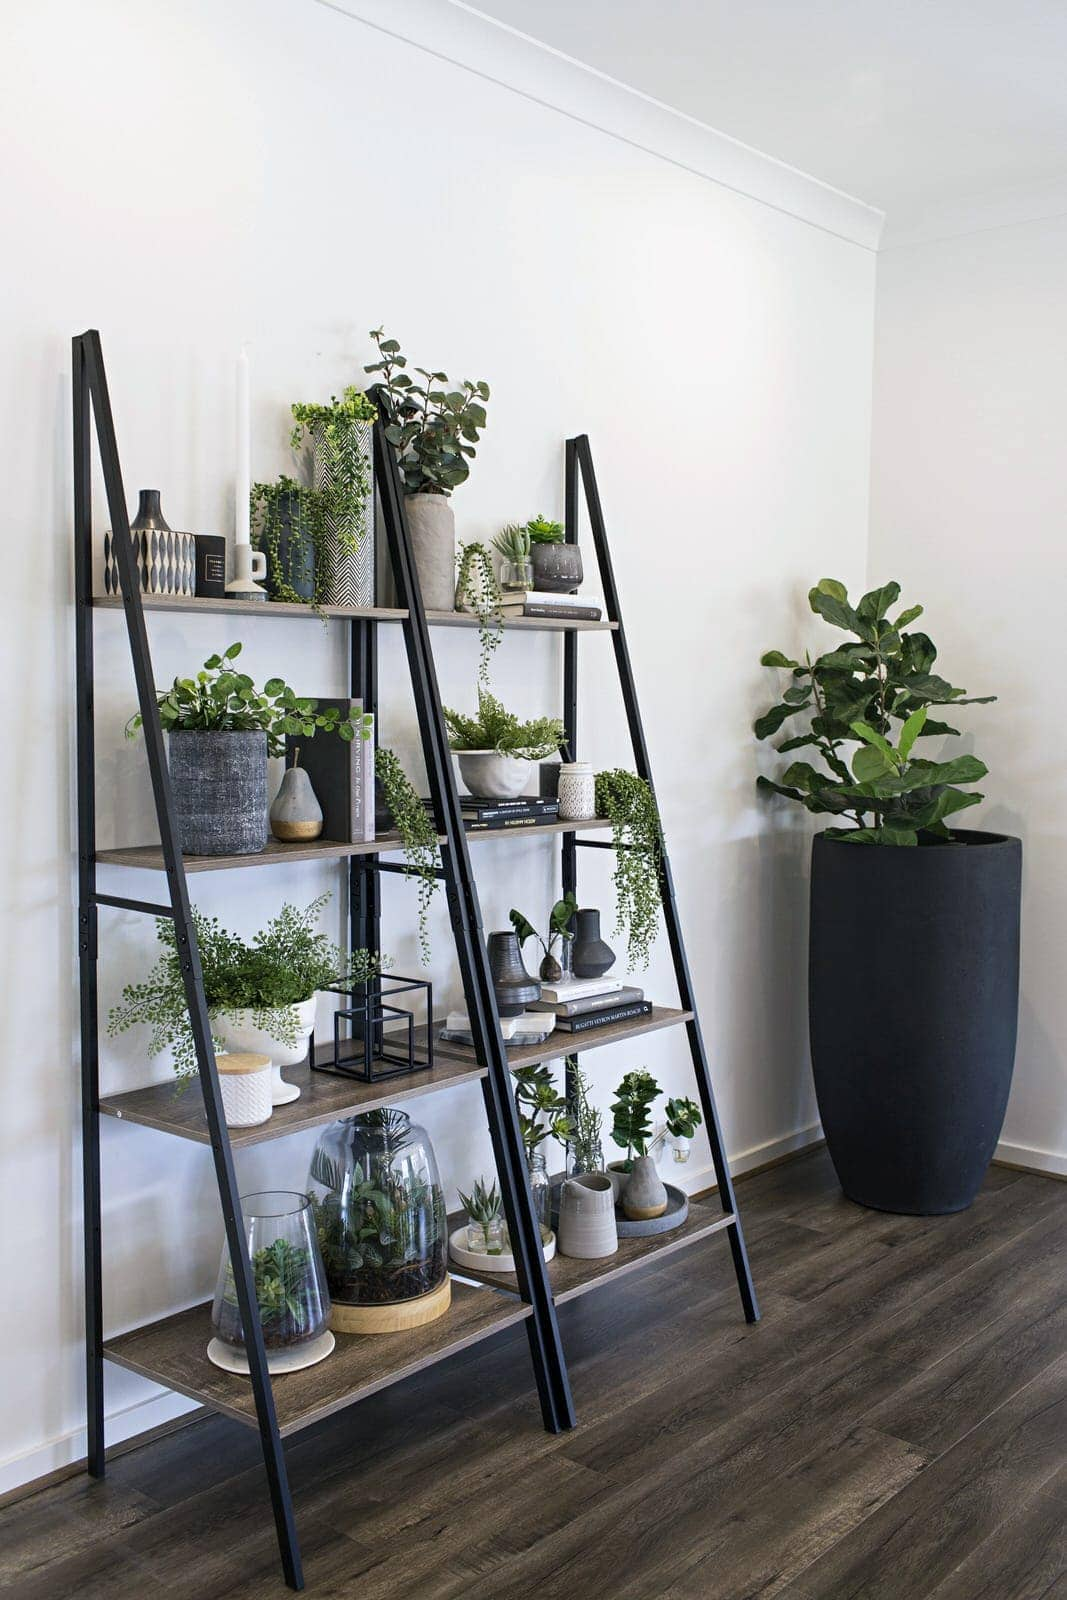 aweshomey therobotechpage com garden indoor vertical uncategorized